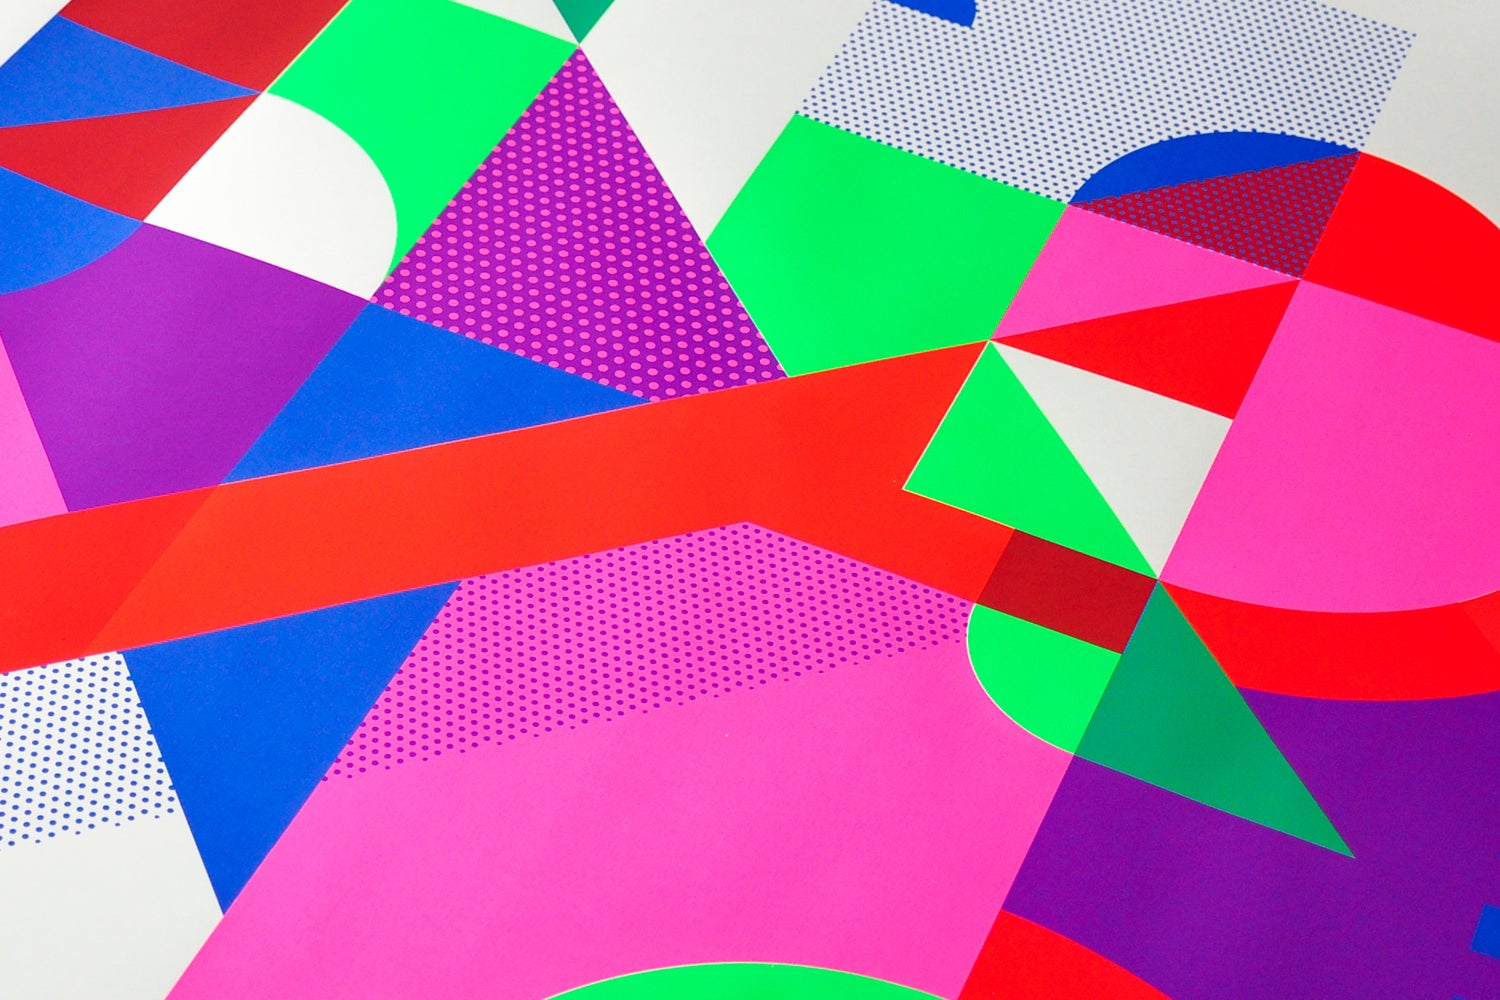 Image of bright coloured grid